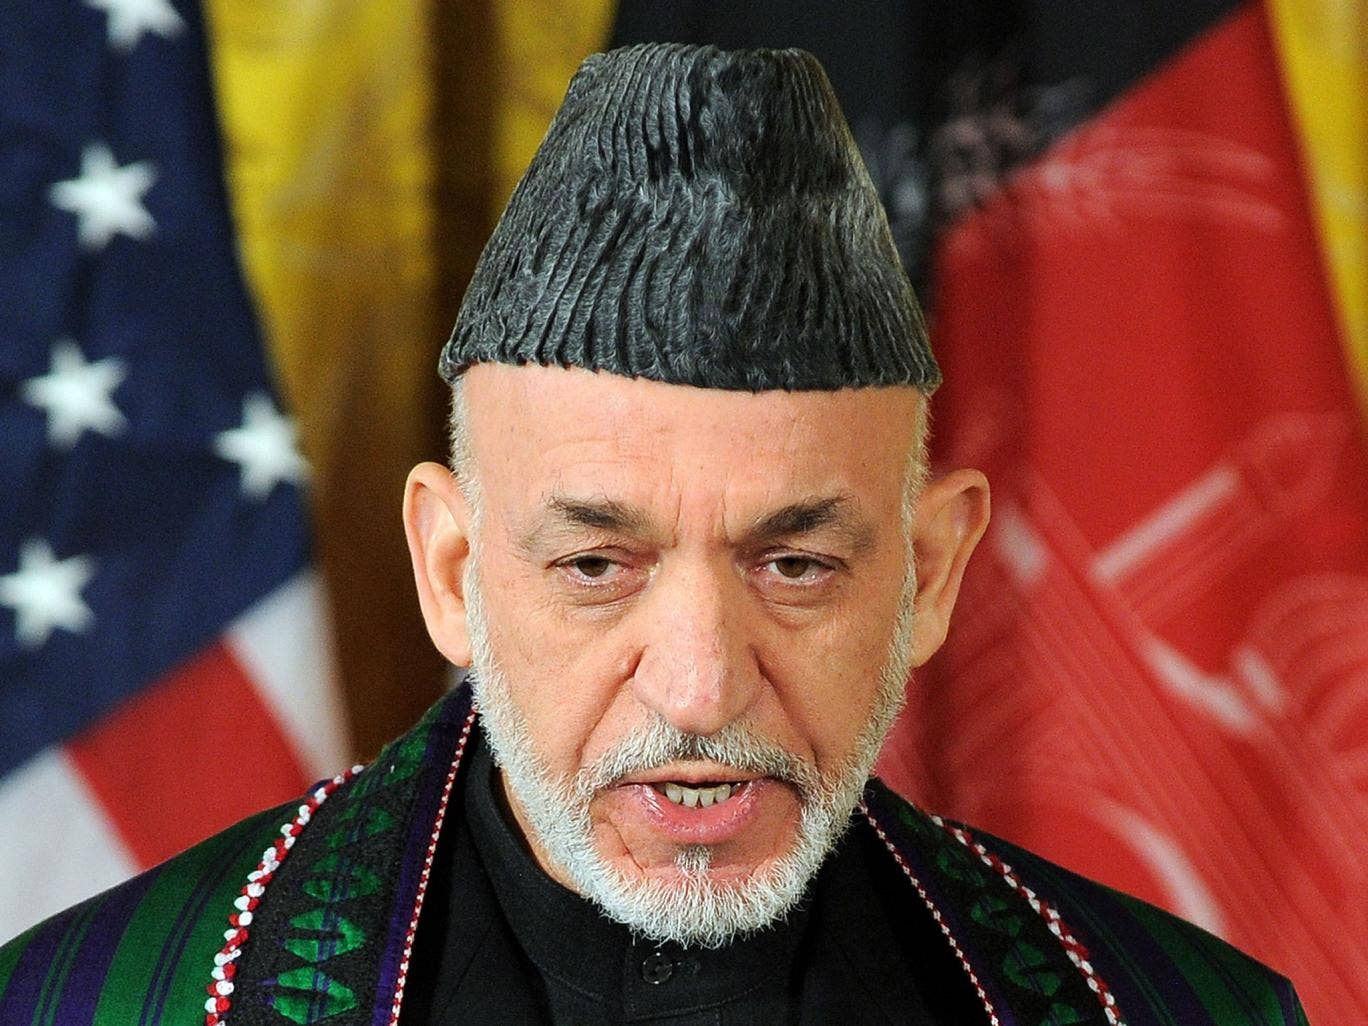 Afghan President Hamid Karzai has admitted that his national security team has been receiving payments from the US government for the past 10 years